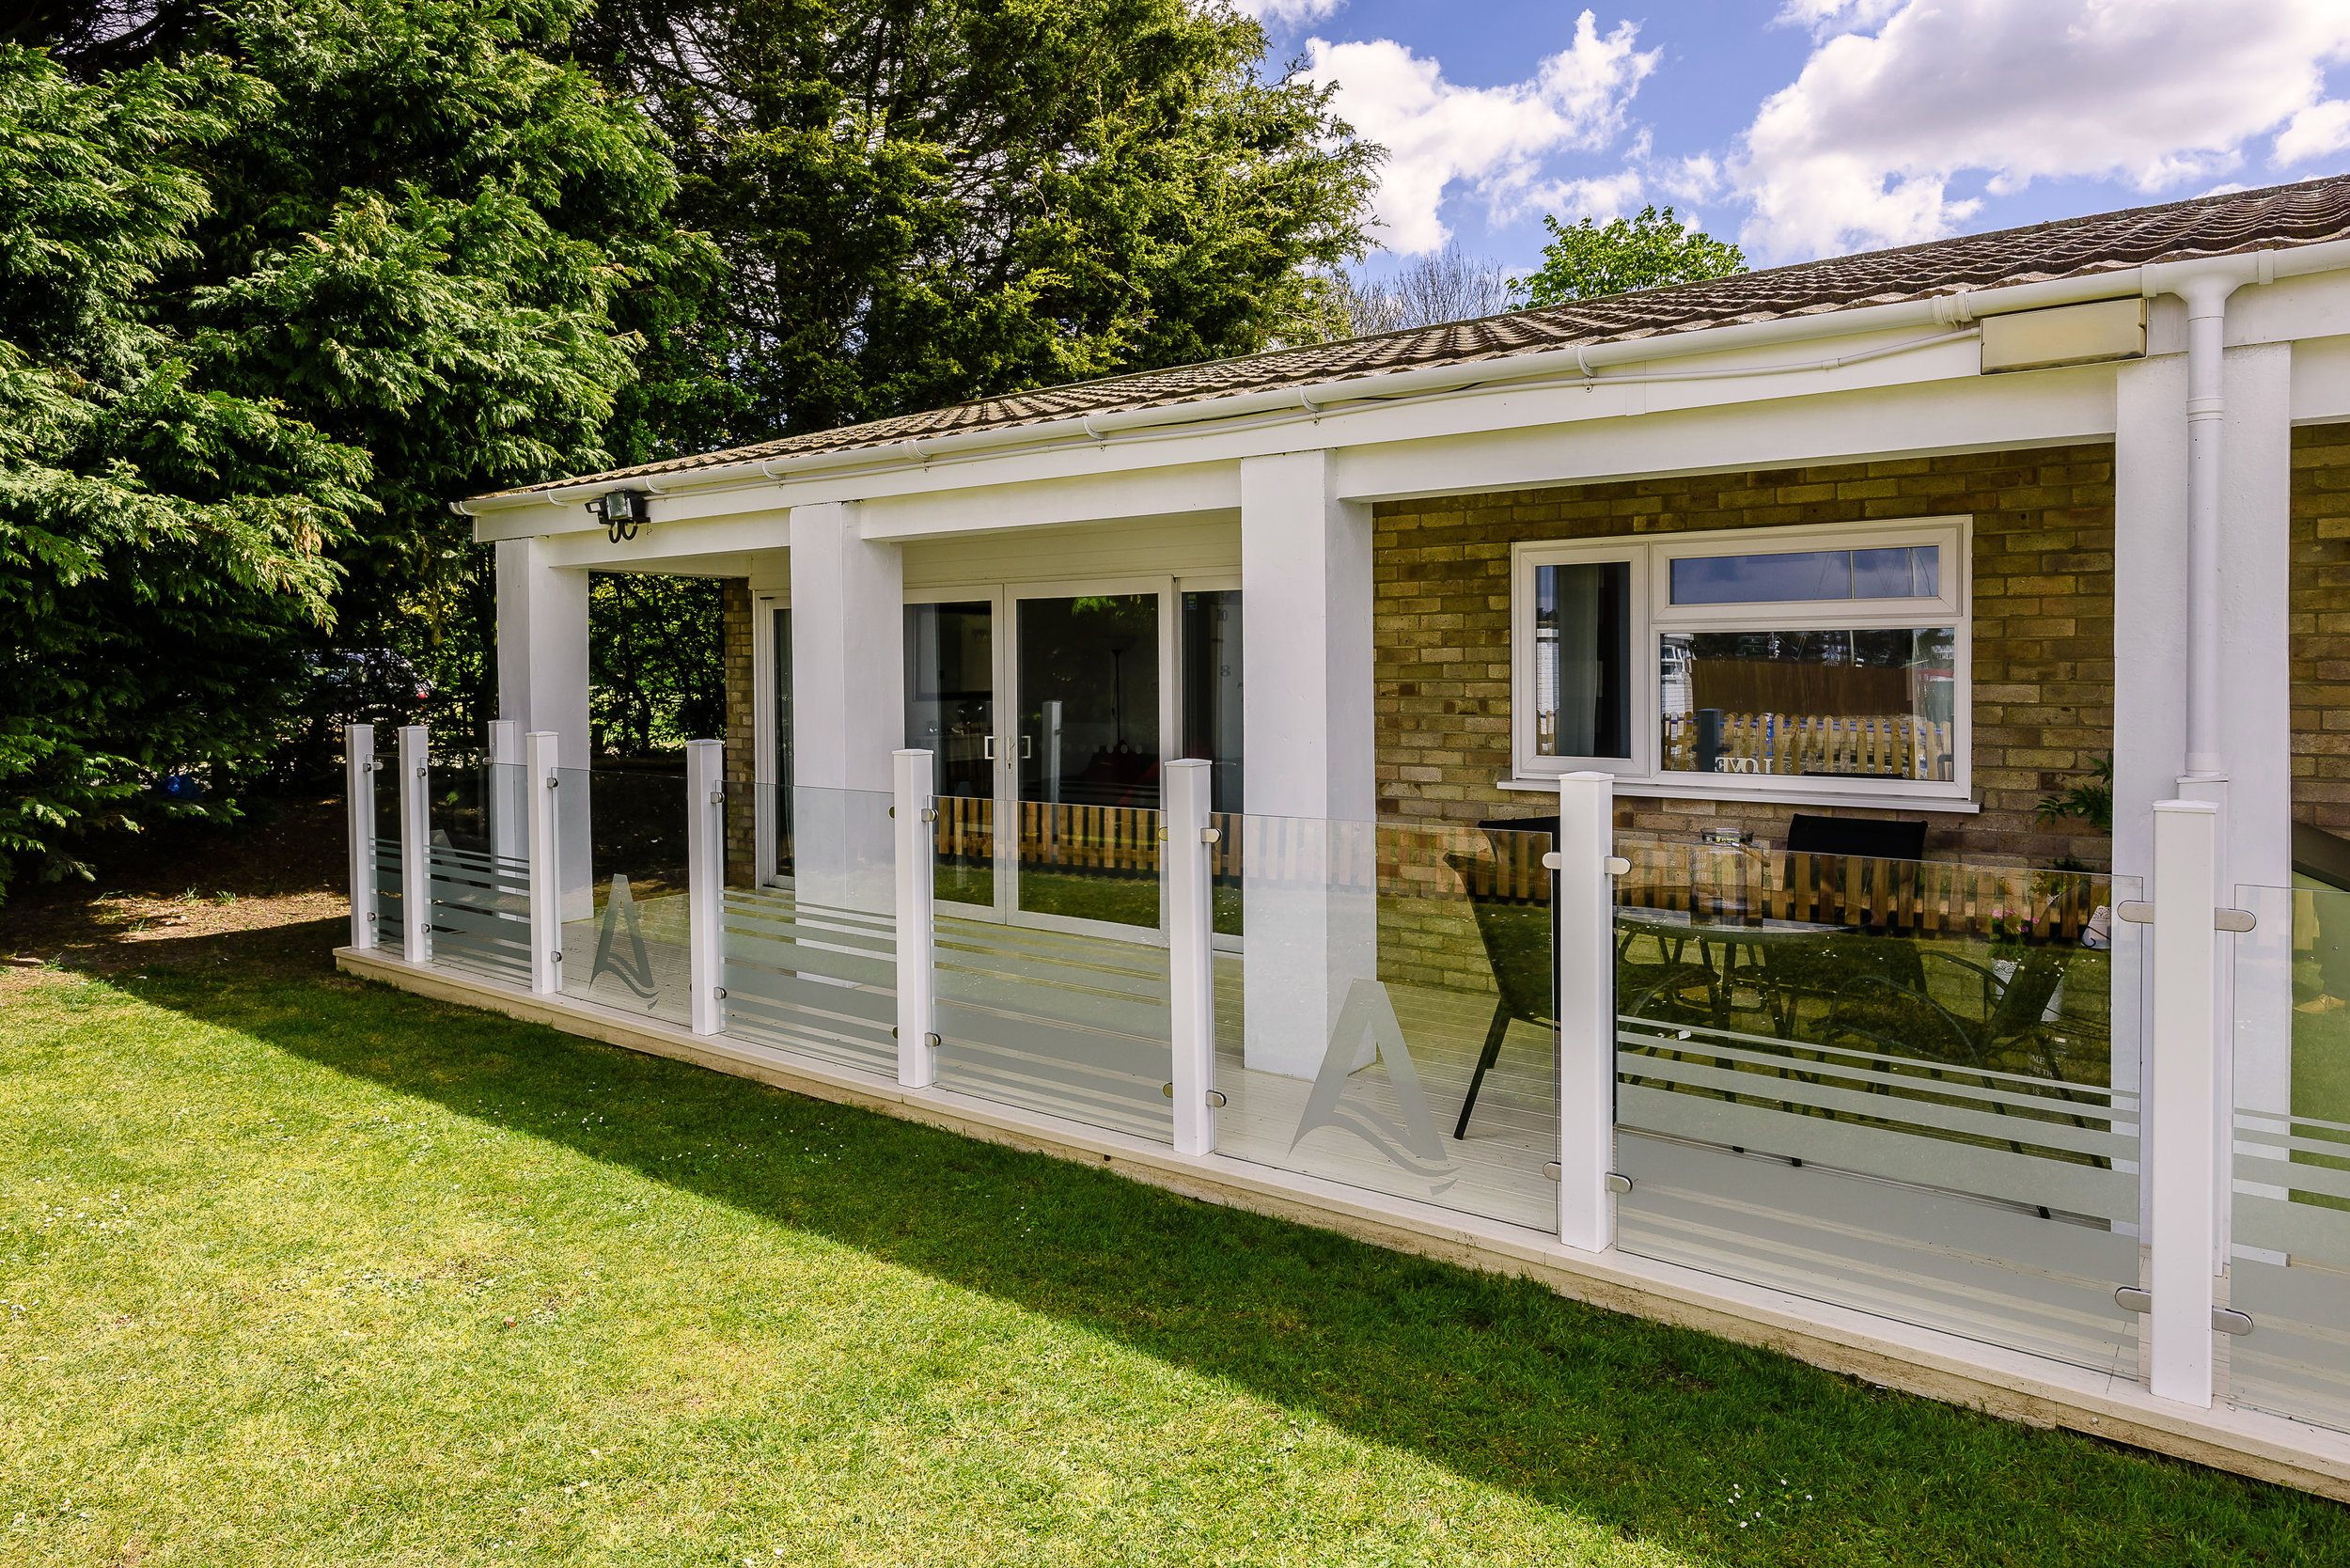 Above: We have a wide range of holiday properties to choose from! From lodges, bungalows to caravans at our new Broadview pitches that have just been released for sale.